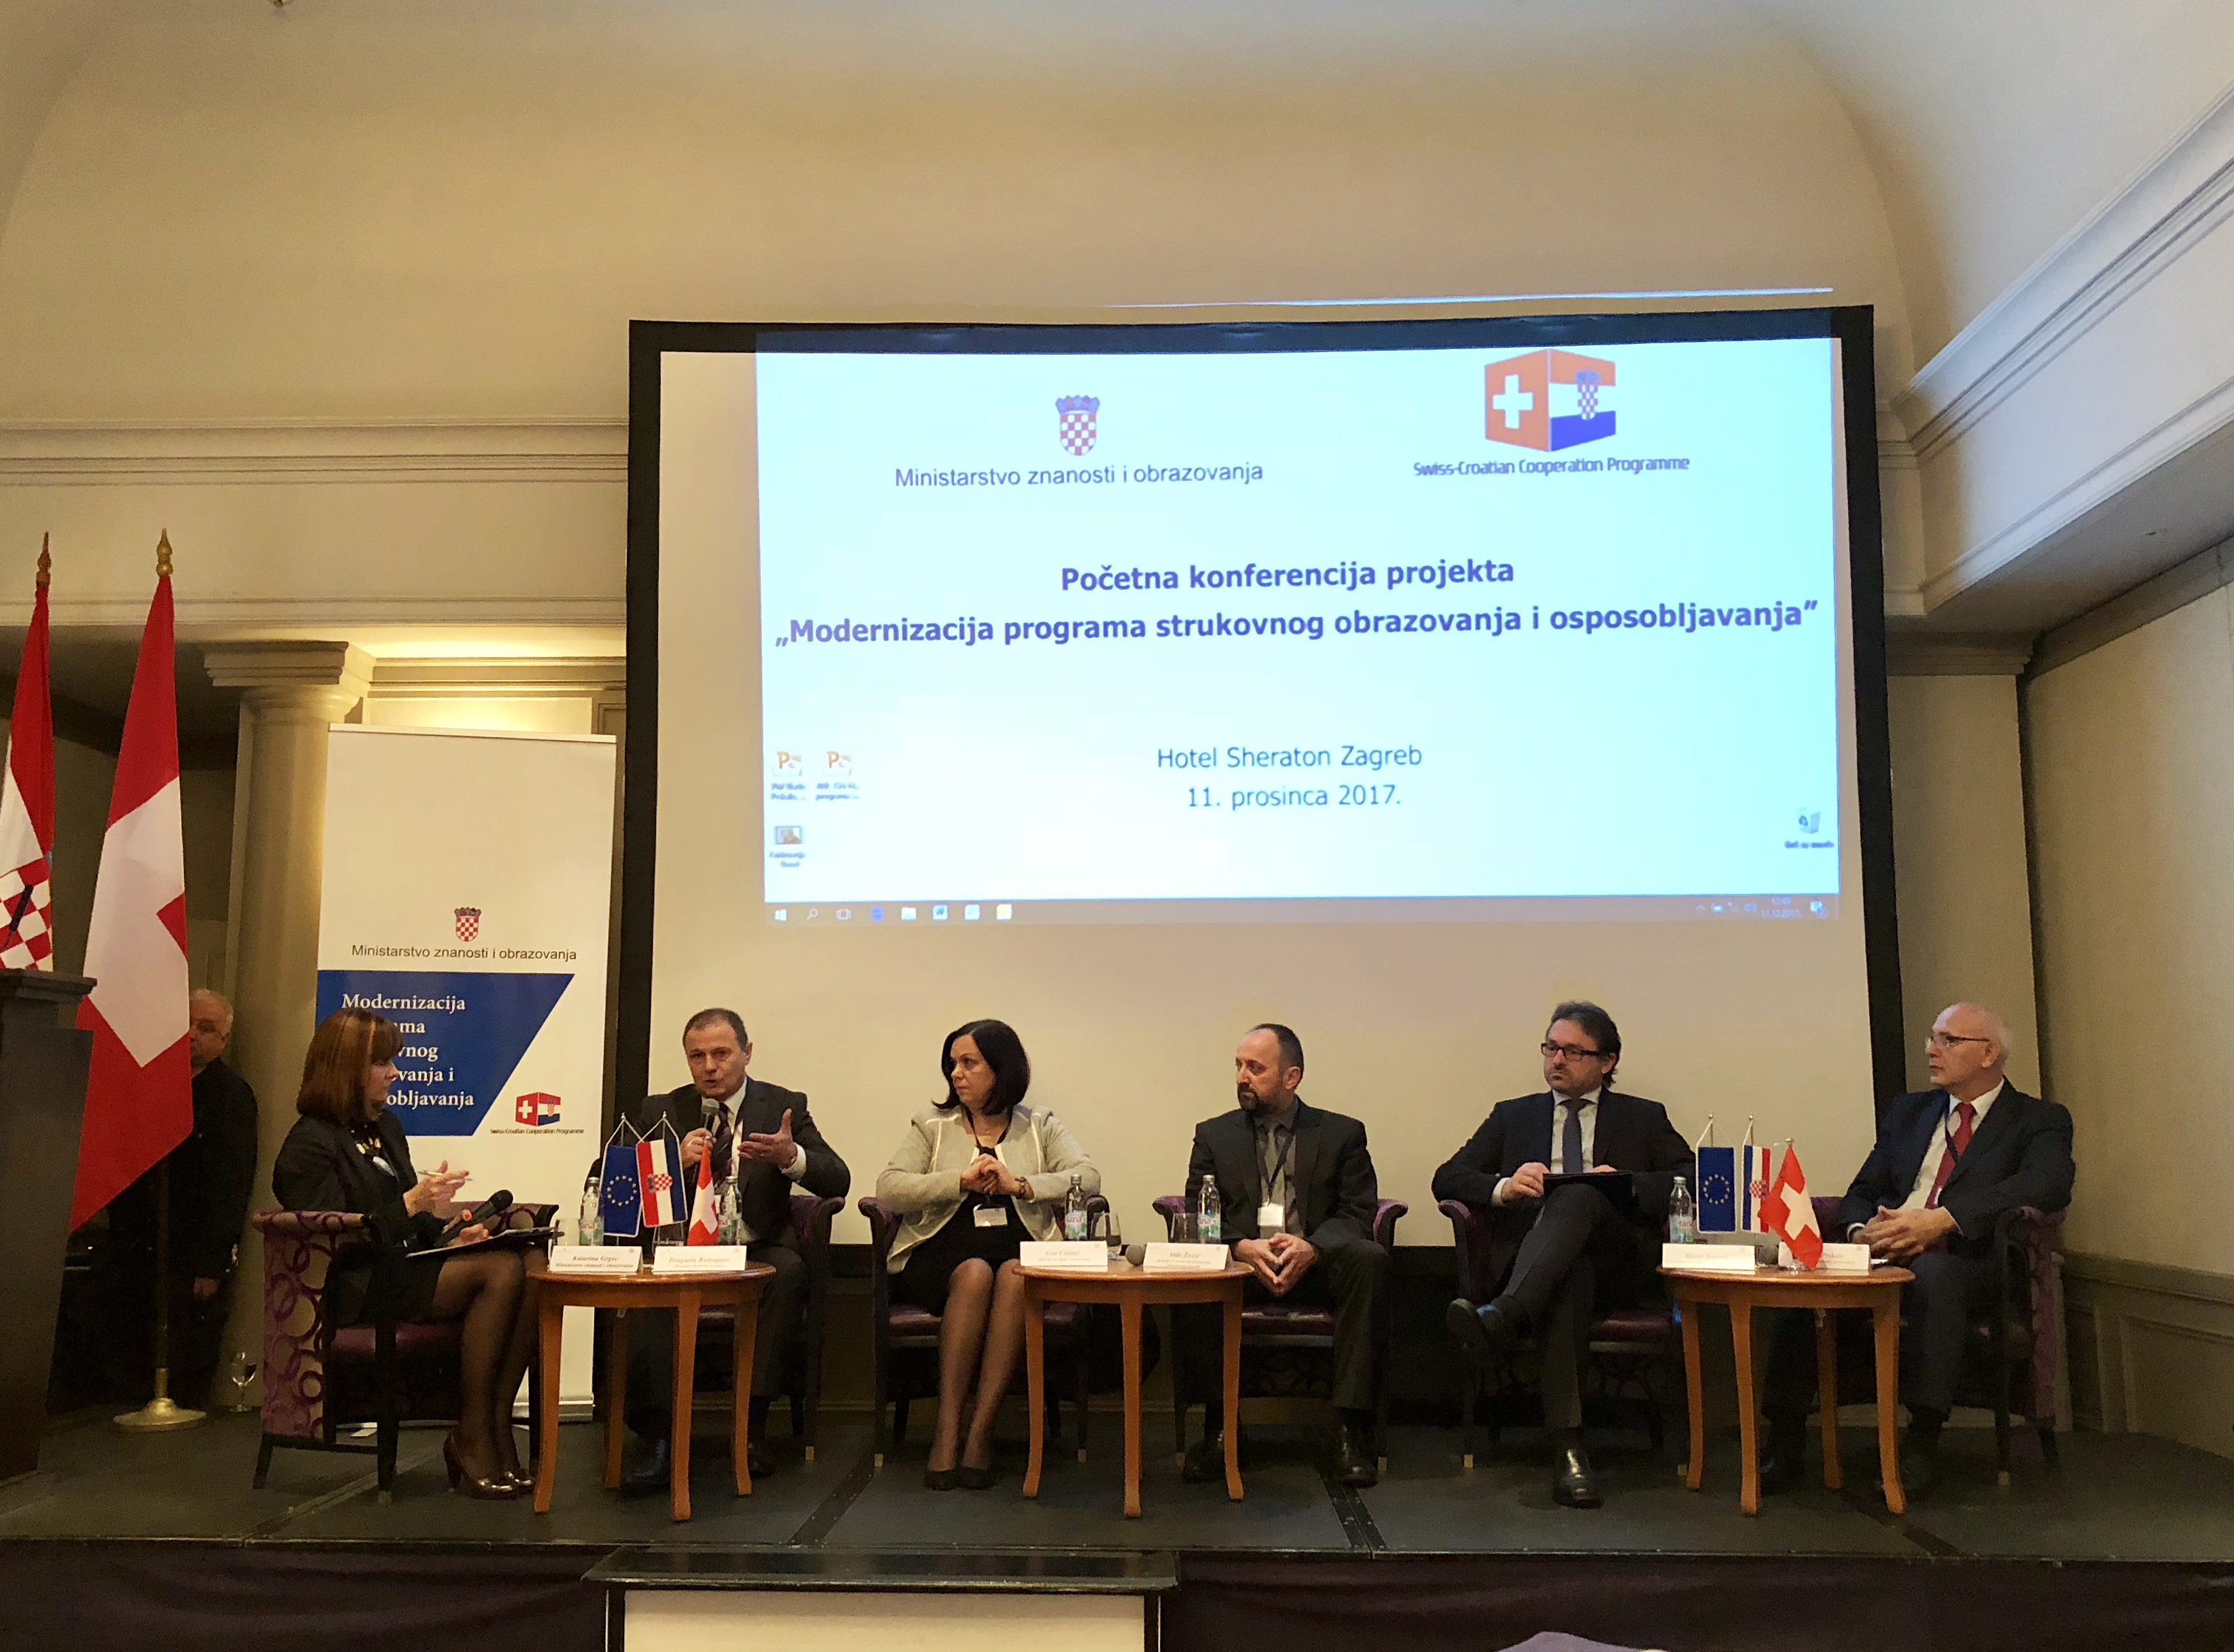 The President of Croatian Chamber of Trades and Crafts participates in the panel discussion on vocational education and training modernisation